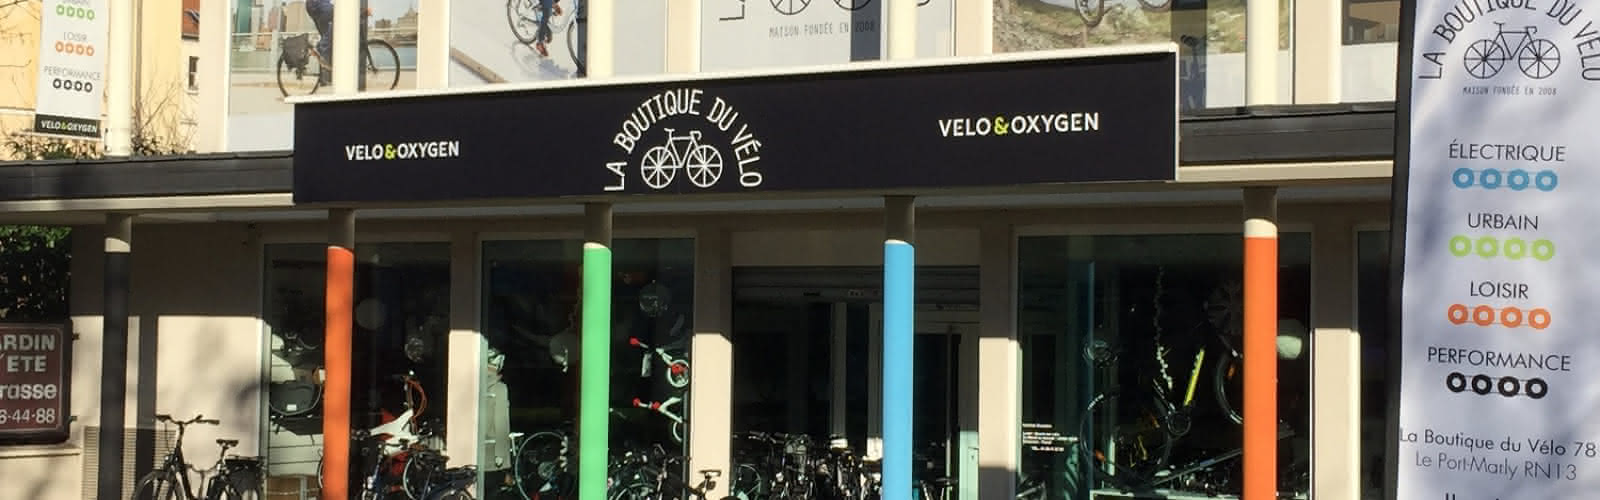 La boutique du vélo, Le Port-Marly